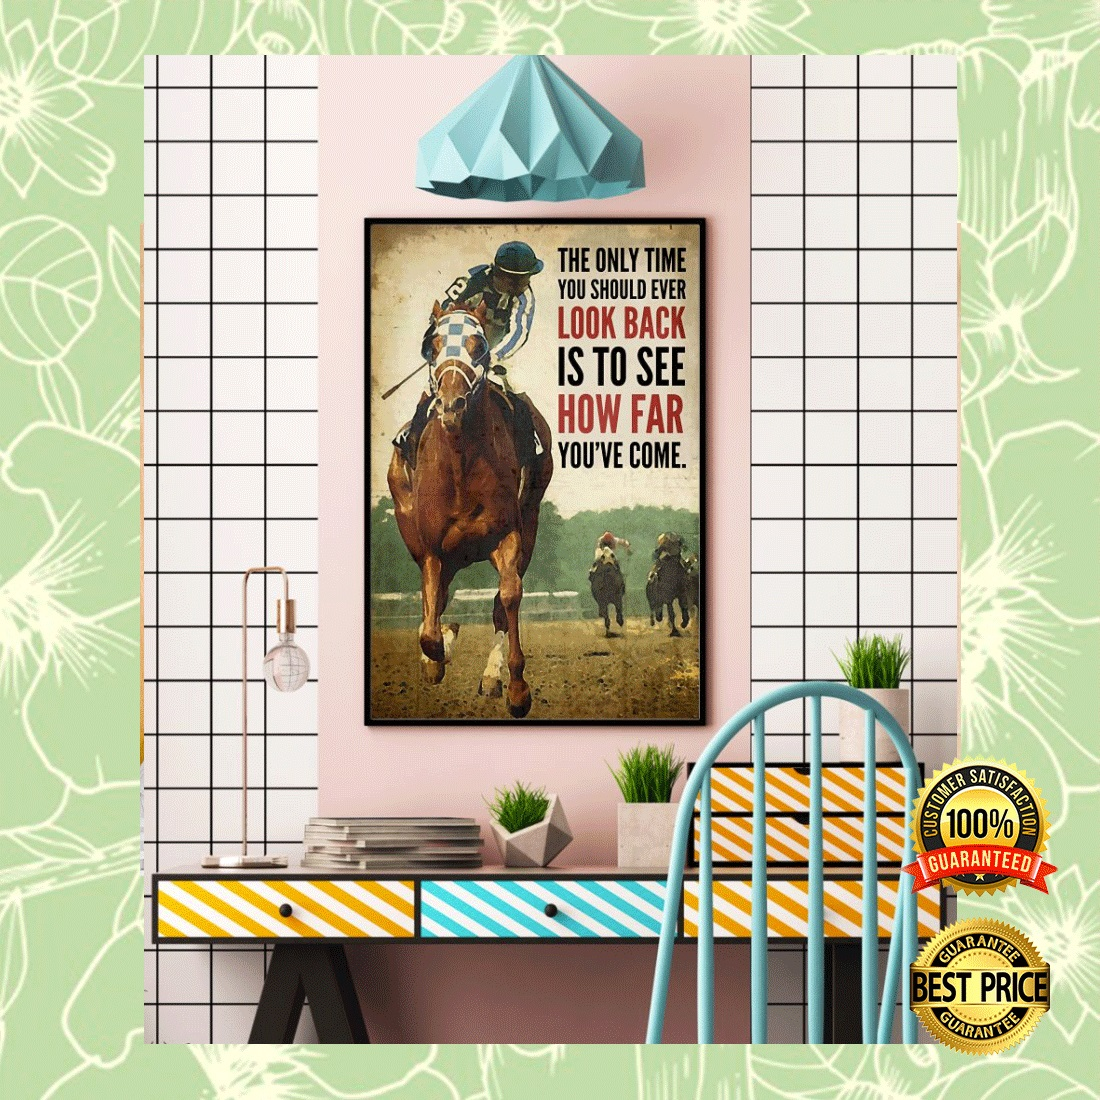 HORSE RACING THE ONLY TIME YOU SHOULD EVER LOOK BACK IS TO SEE HOW FAR YOU'VE COME POSTER 7